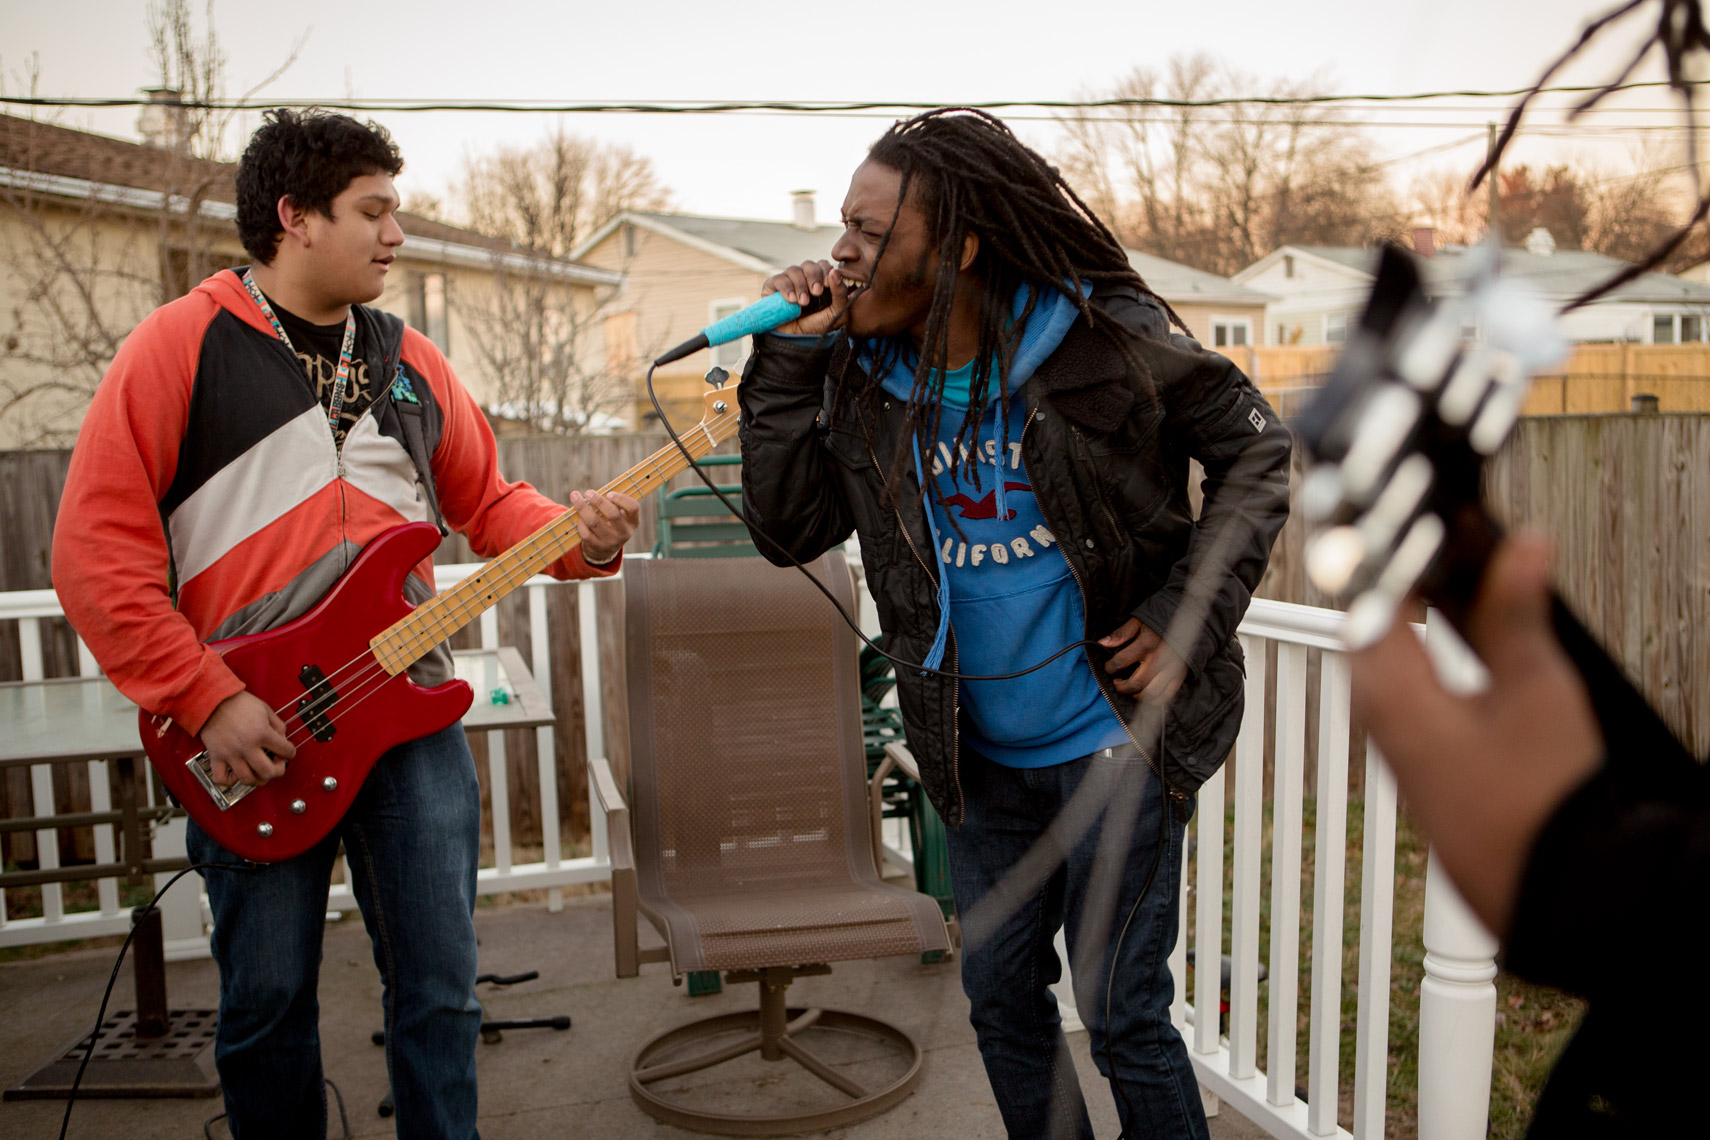 high school band practices on porch for washington dc commercial photography